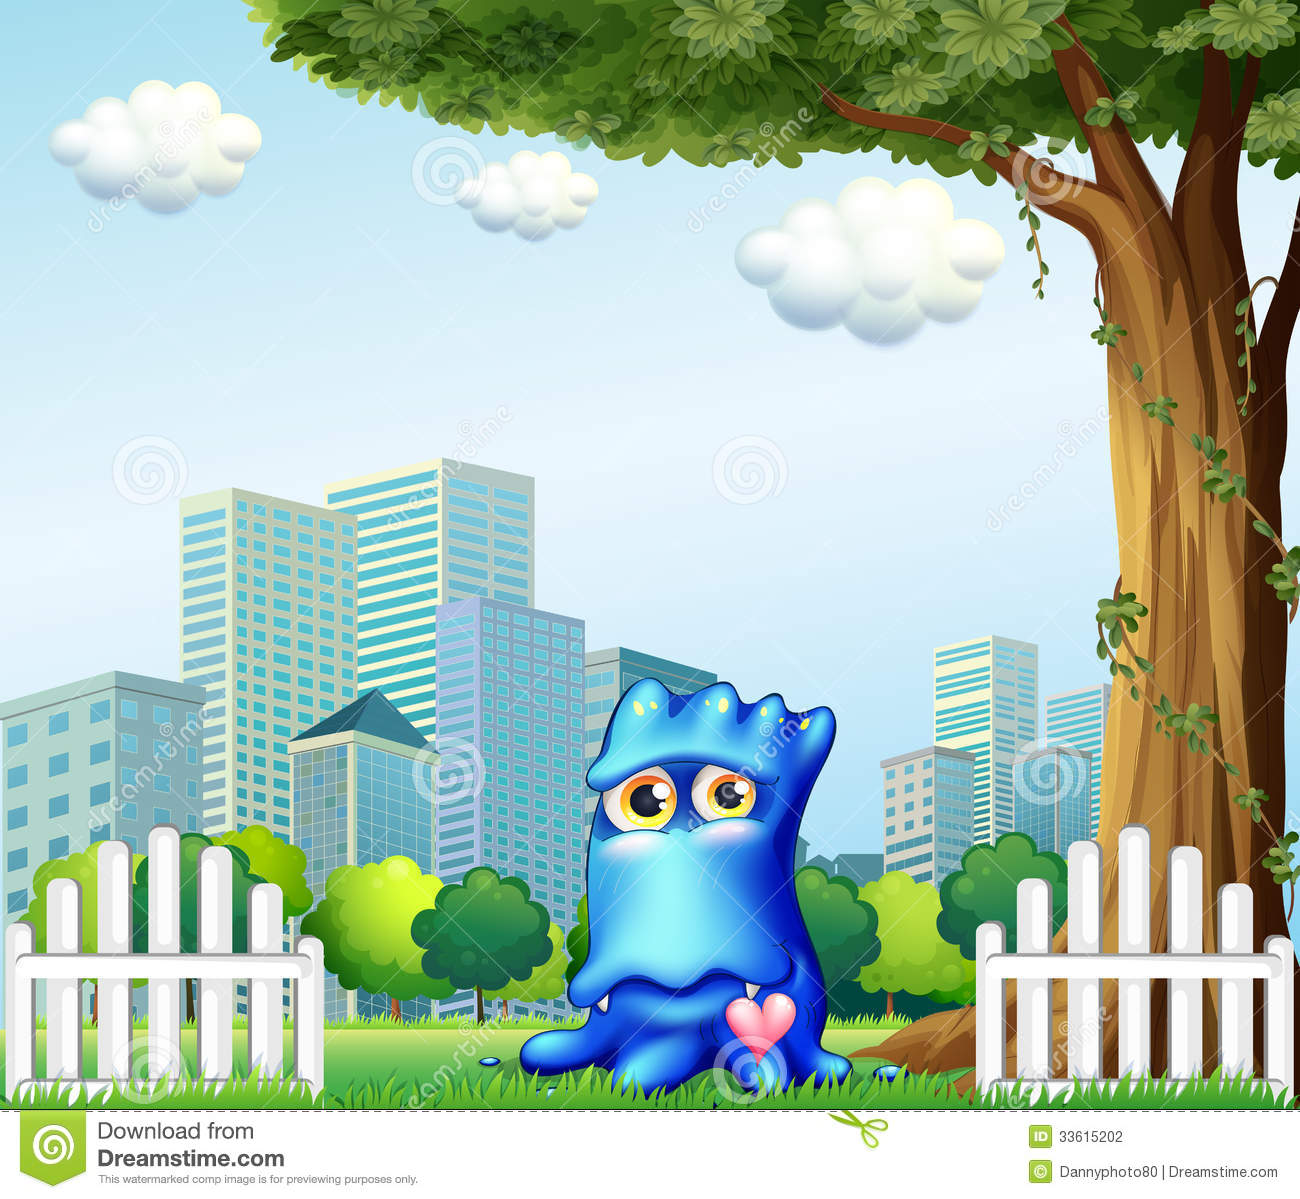 A blue monster standing near the fence across the tall for 1 2 3 4 monsters walking across the floor